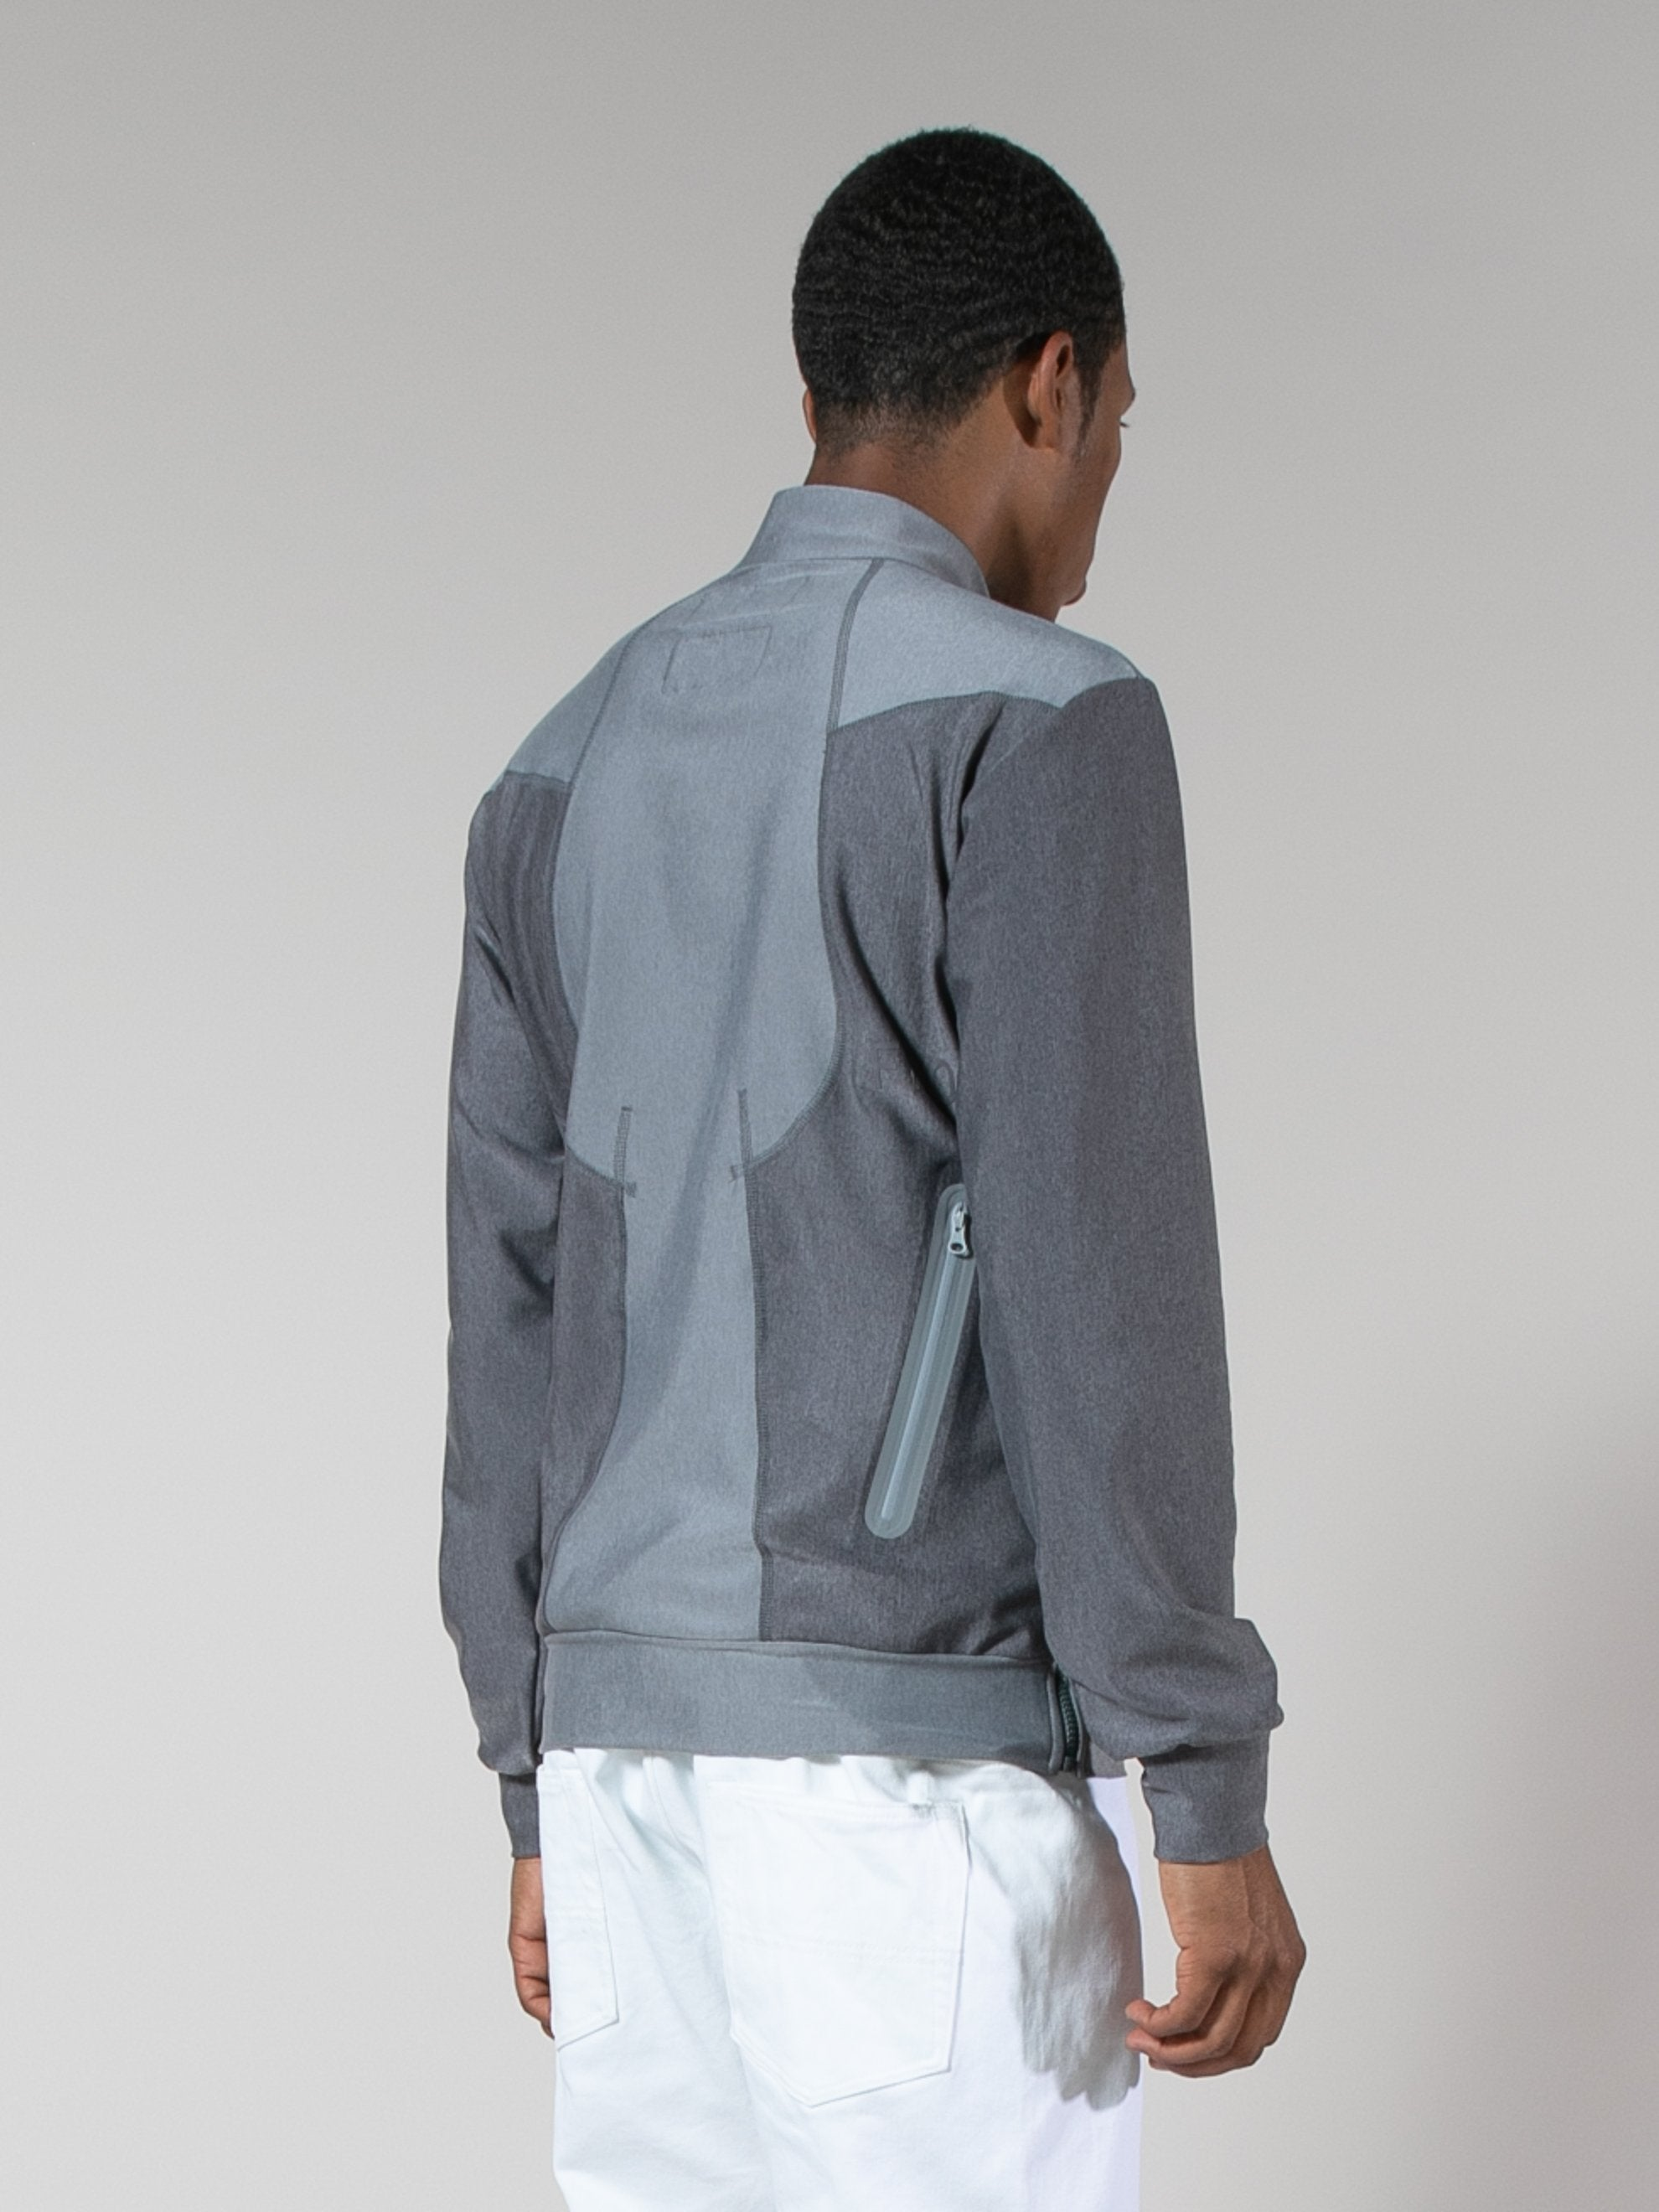 Charcoal Grey Quick-Dry Zip Sweater 4